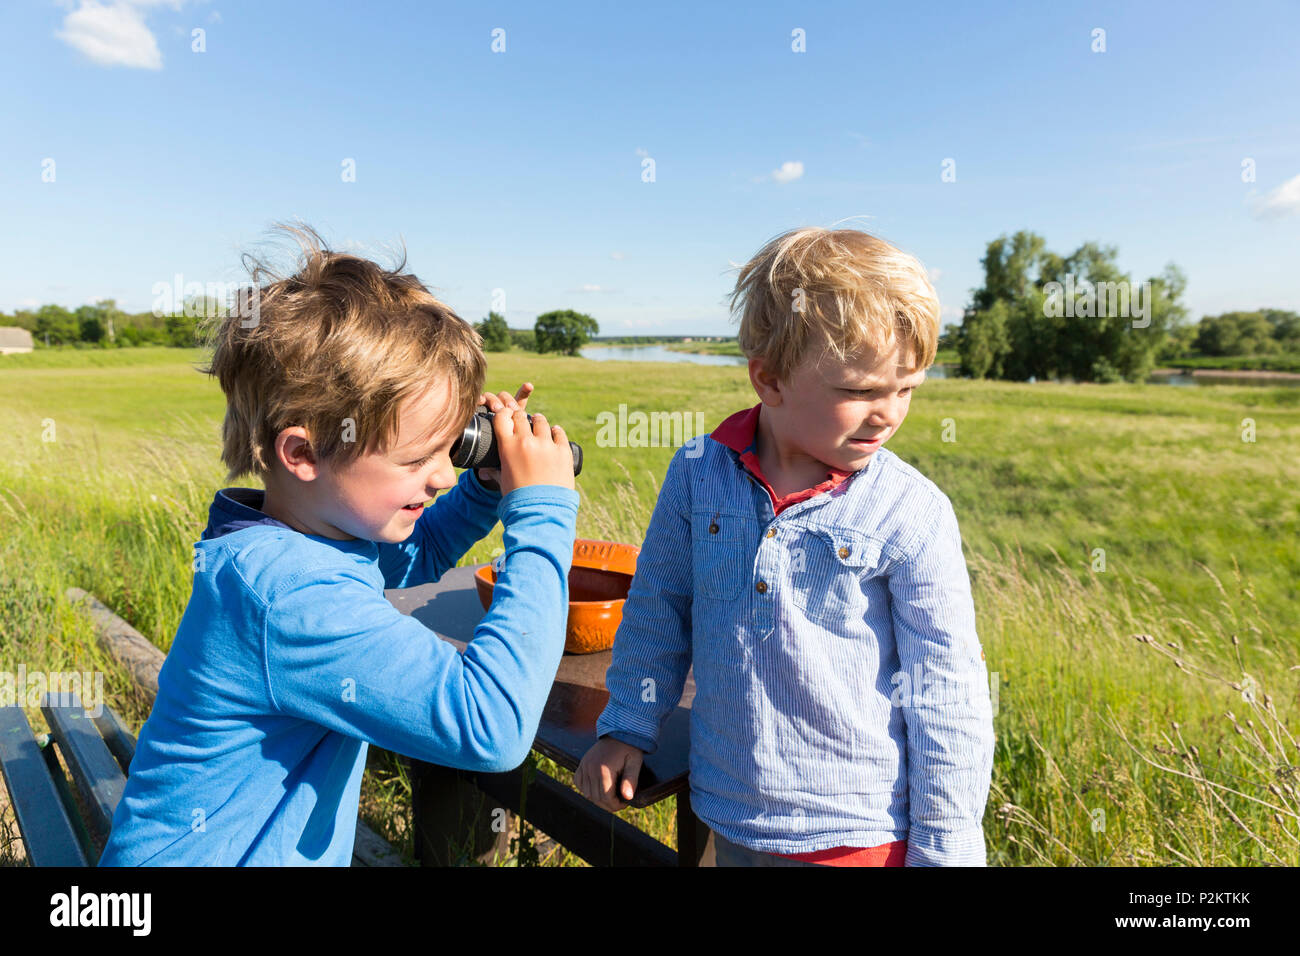 Boys with a binoculars, family bicycle tour along the river Elbe, adventure, from Torgau to Riesa, Saxony, Germany, Europe Stock Photo